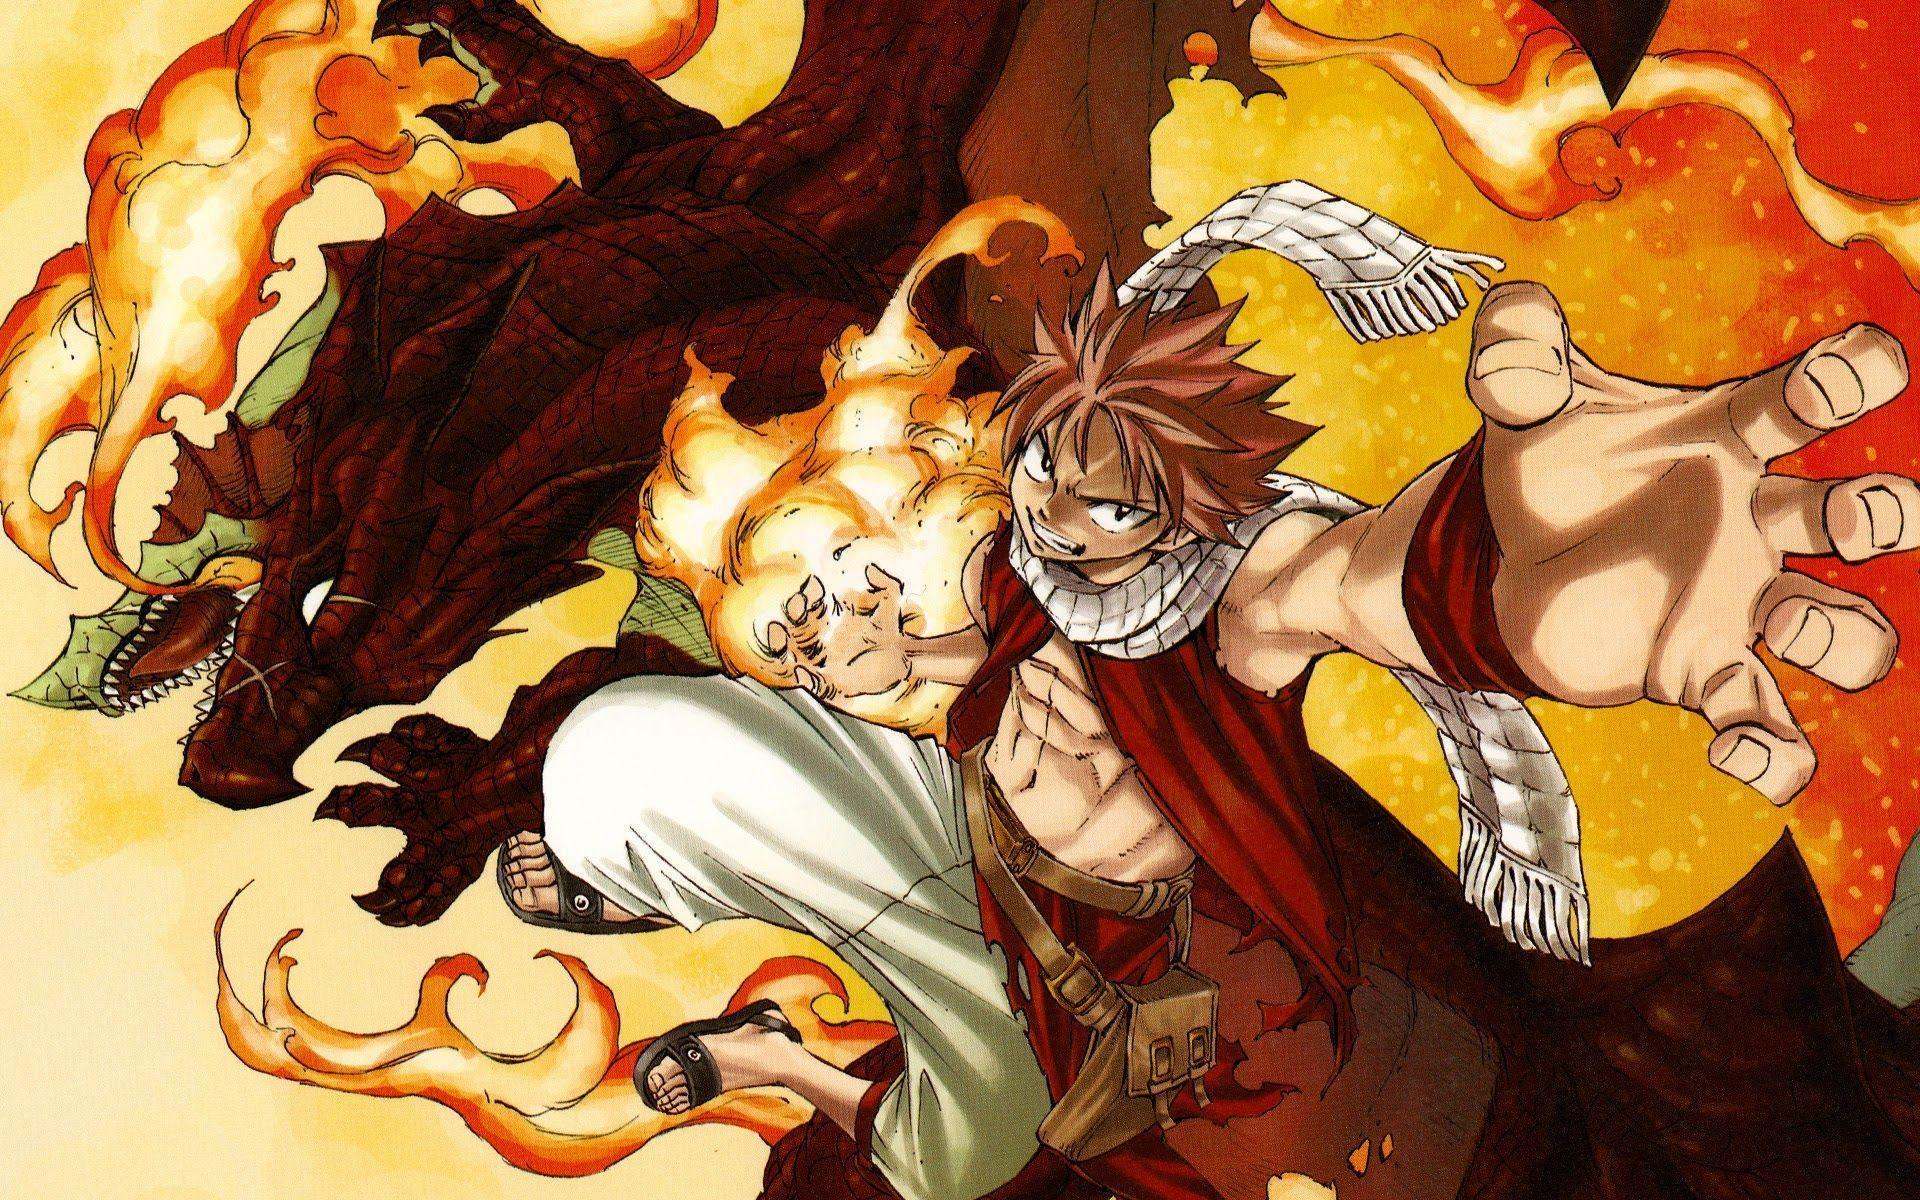 Natsu Dragon Force HD Wallpaper Background